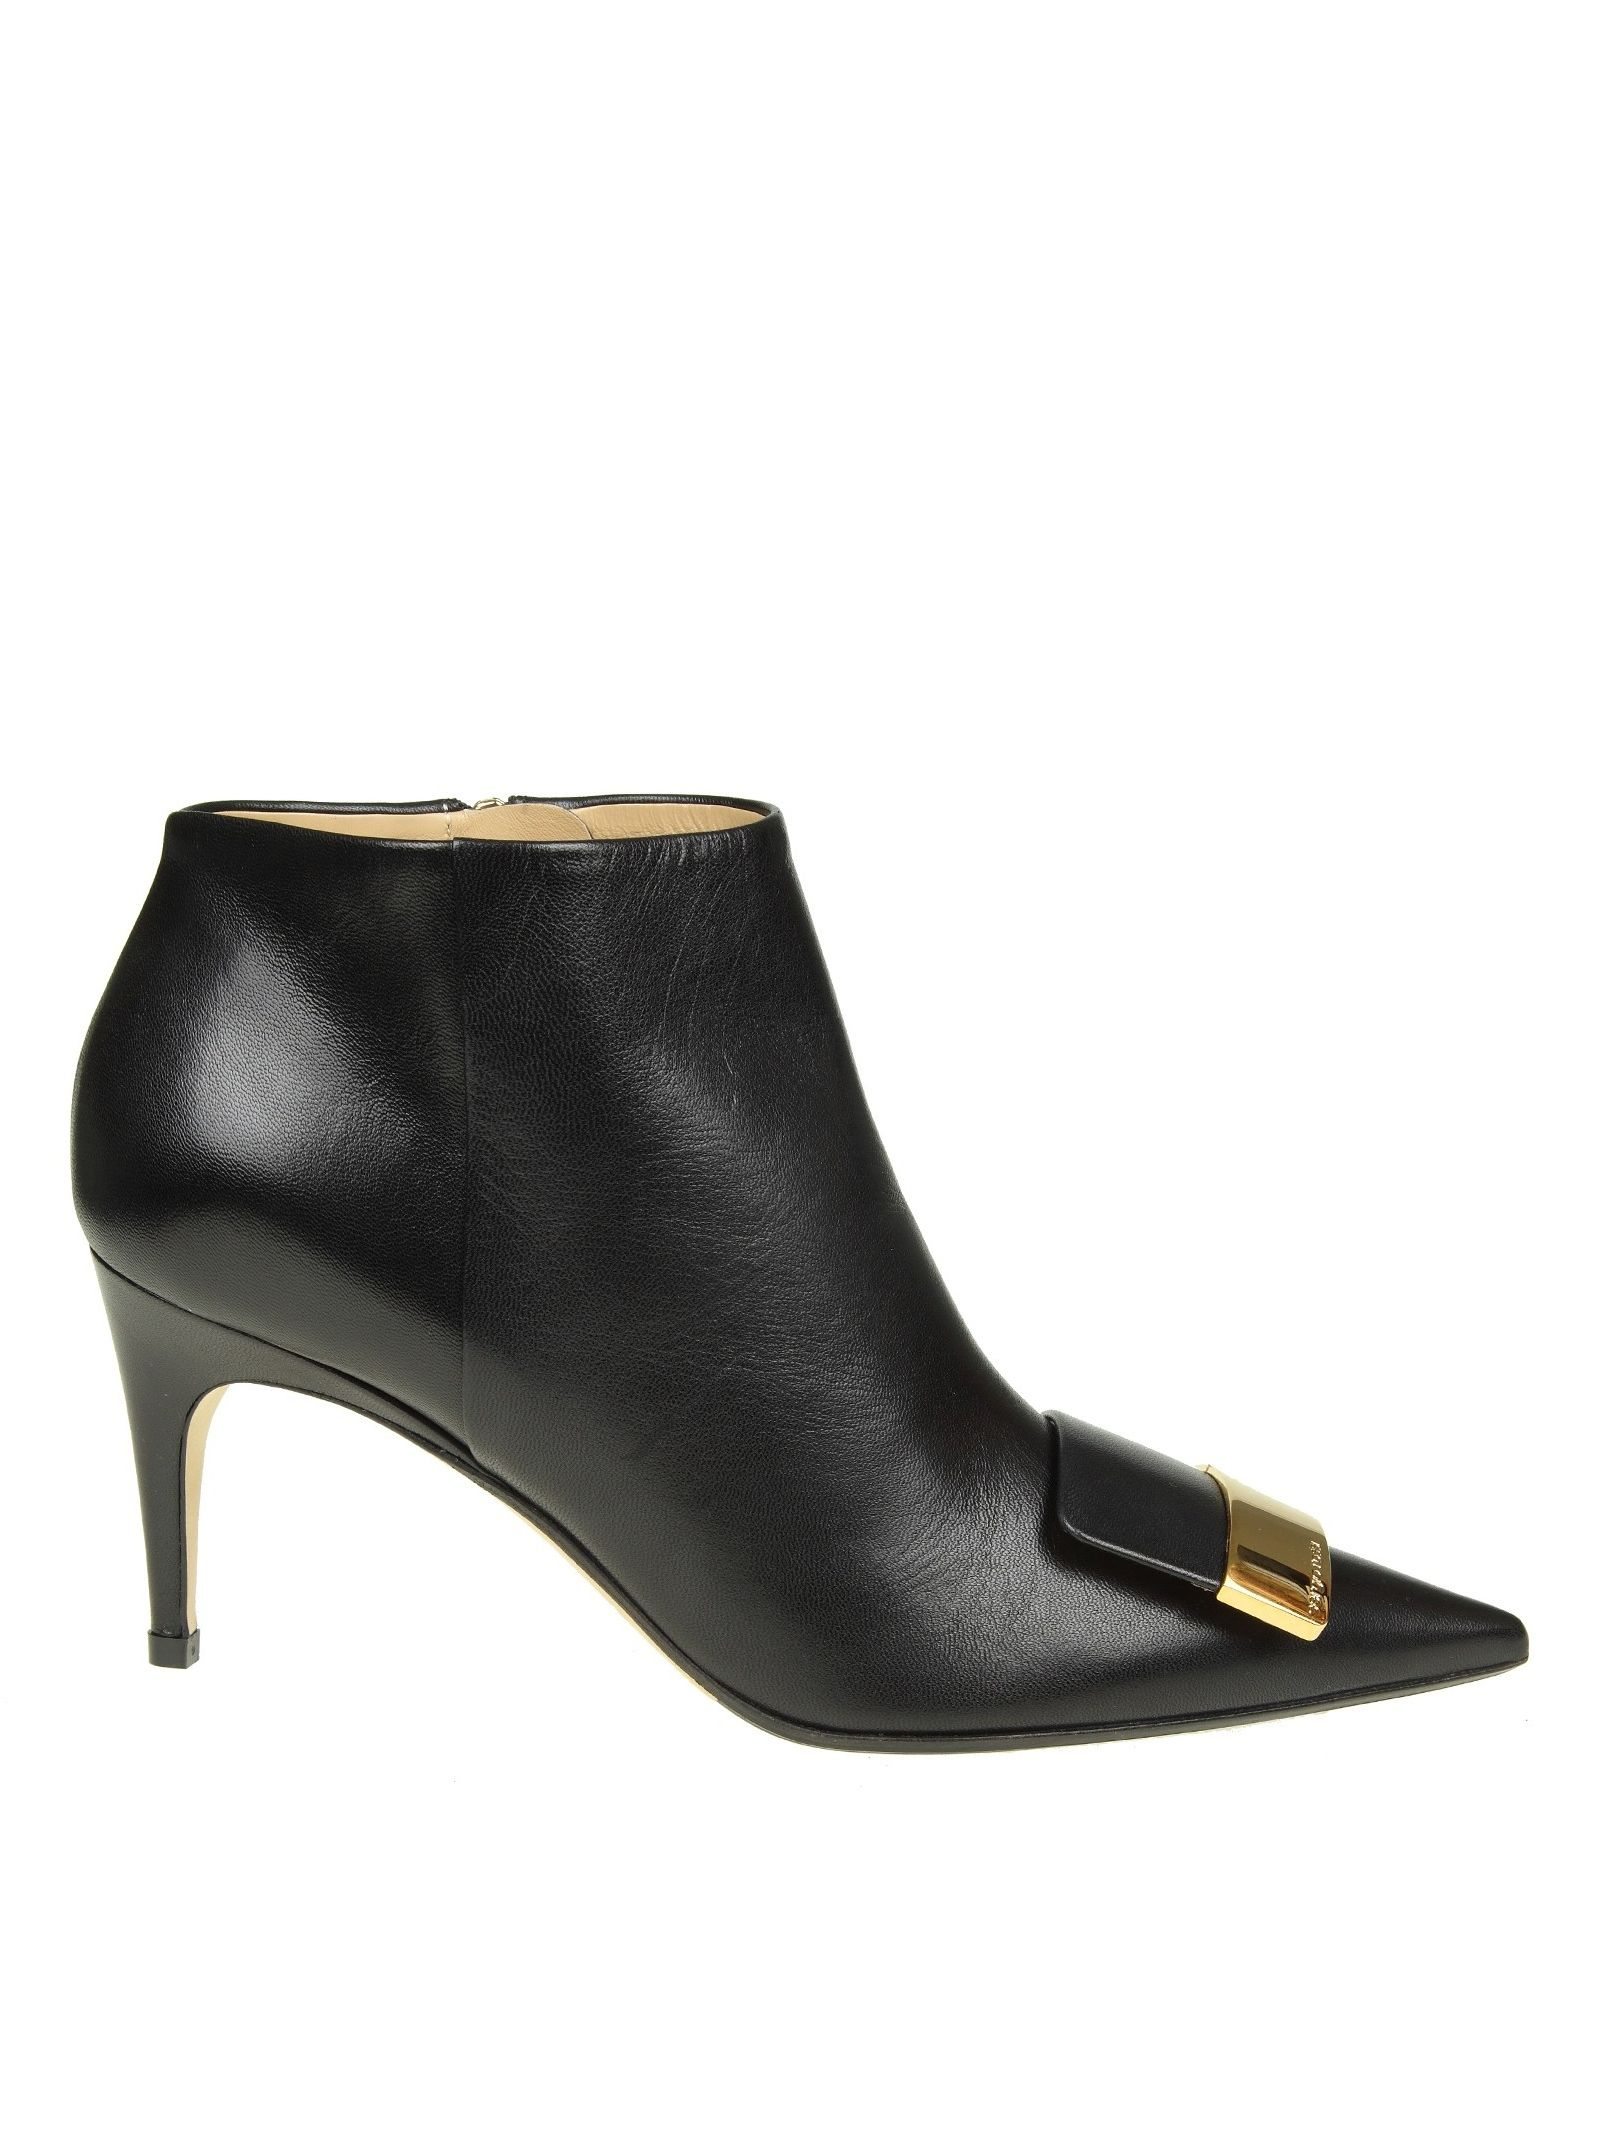 fbd867990666 SERGIO ROSSI Sergio Rossi Boots Pointed In Black Leather